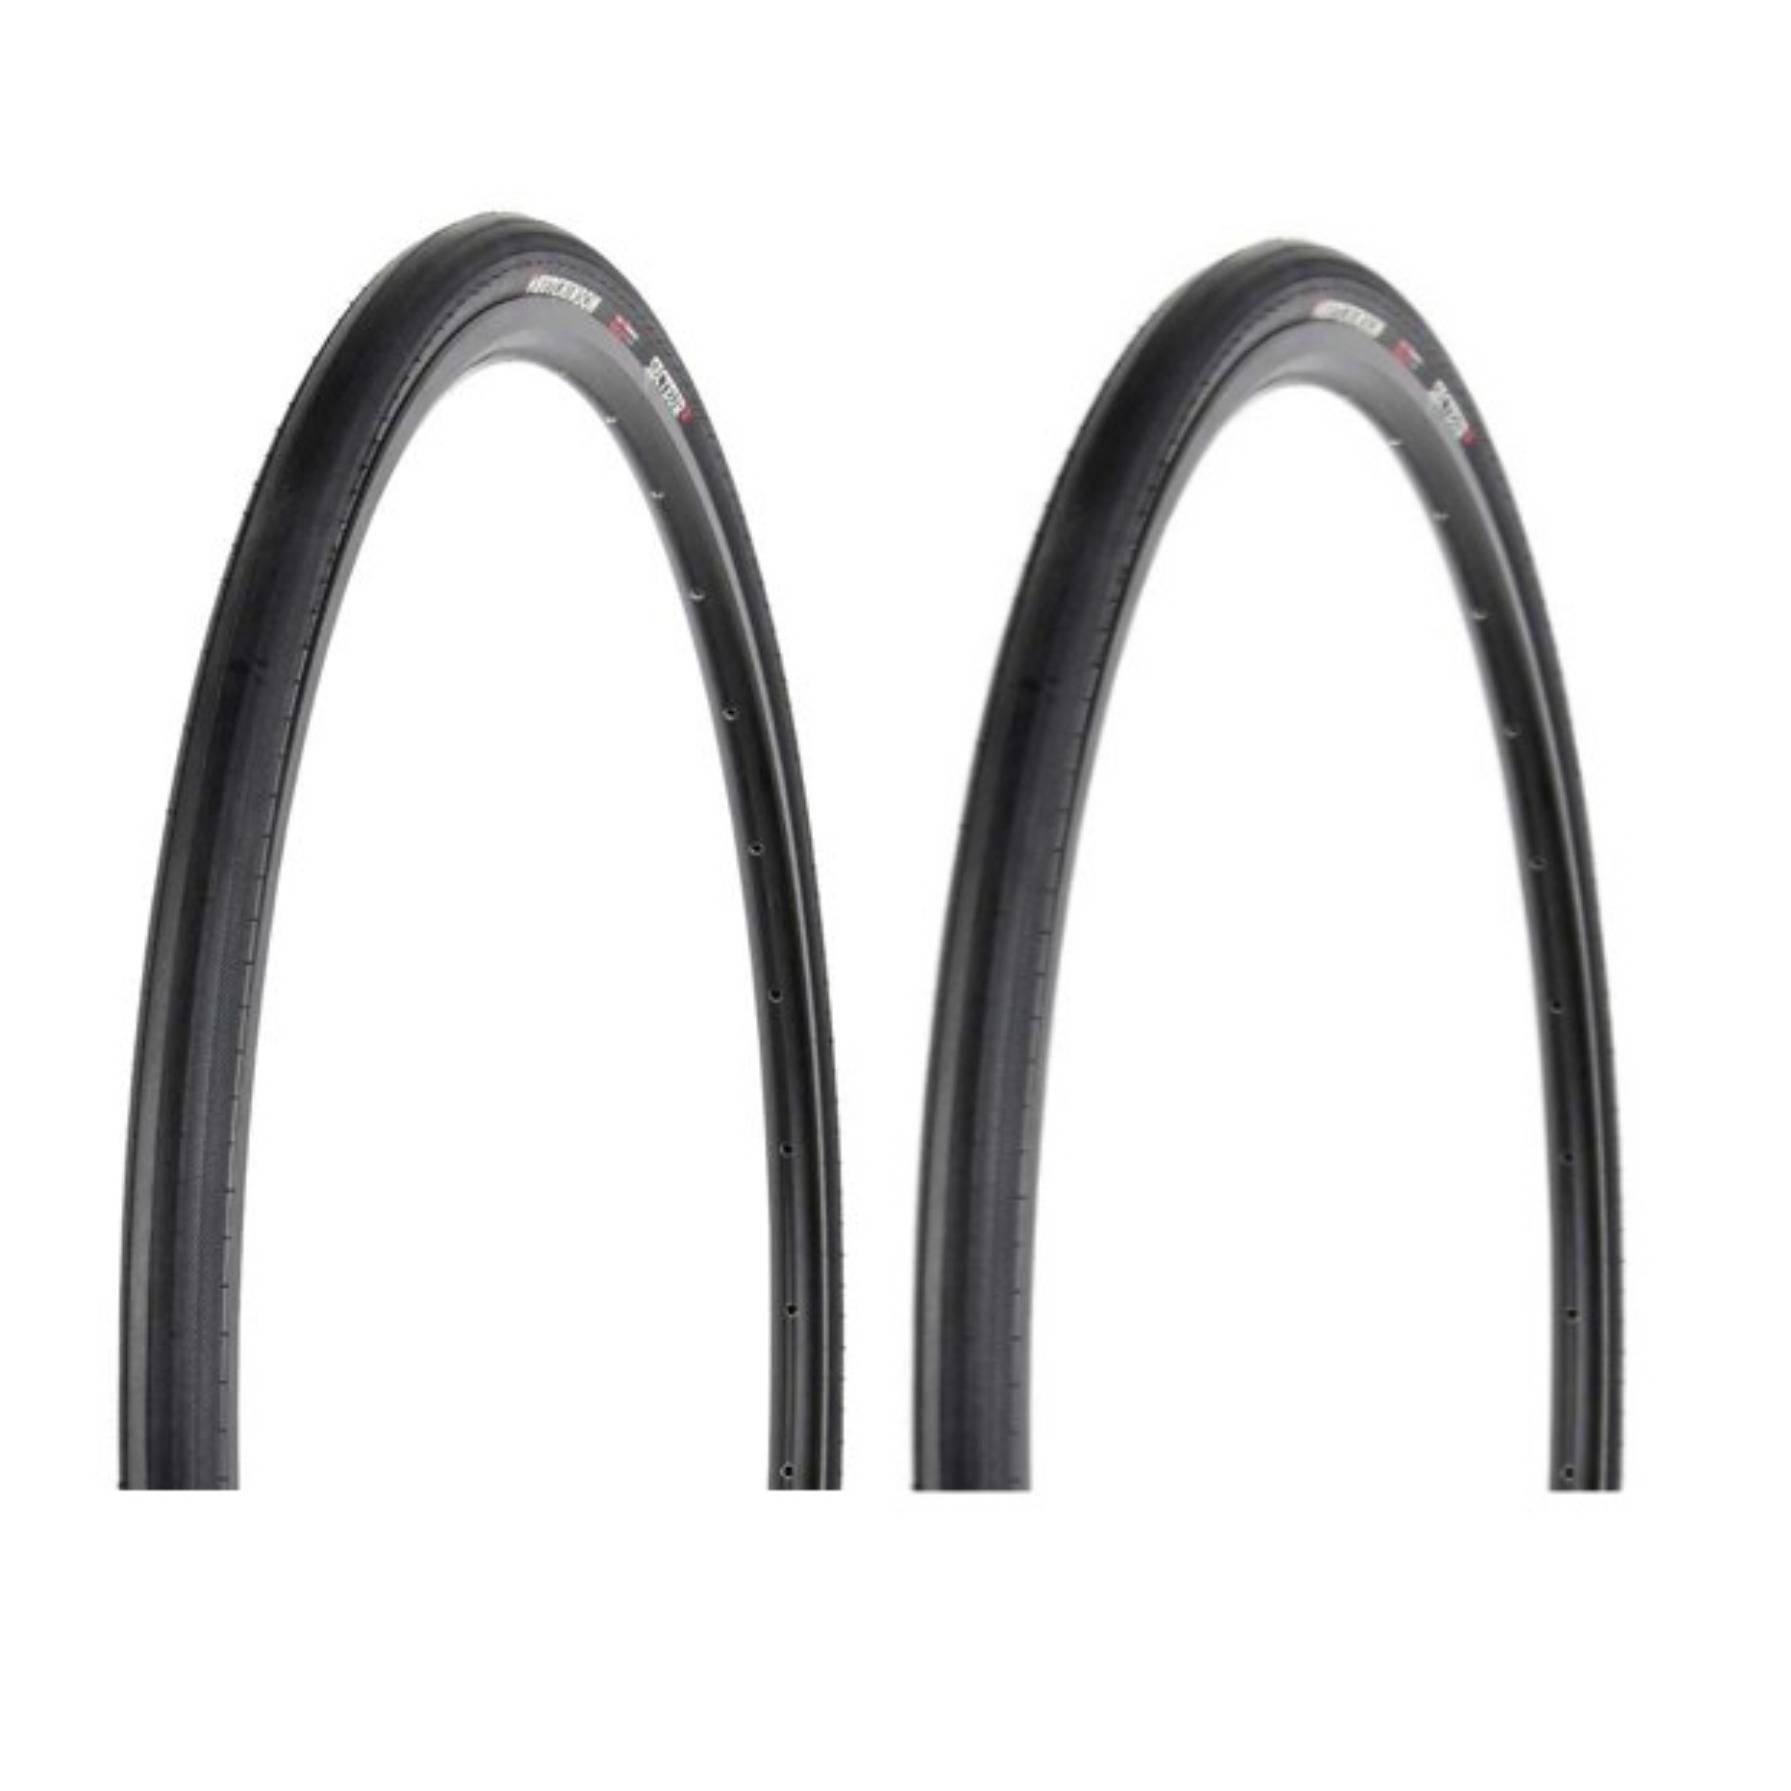 Hutchinson Sector 32 Tubeless Ready Road Bike Tires (2-Pack, Black, 700x32)